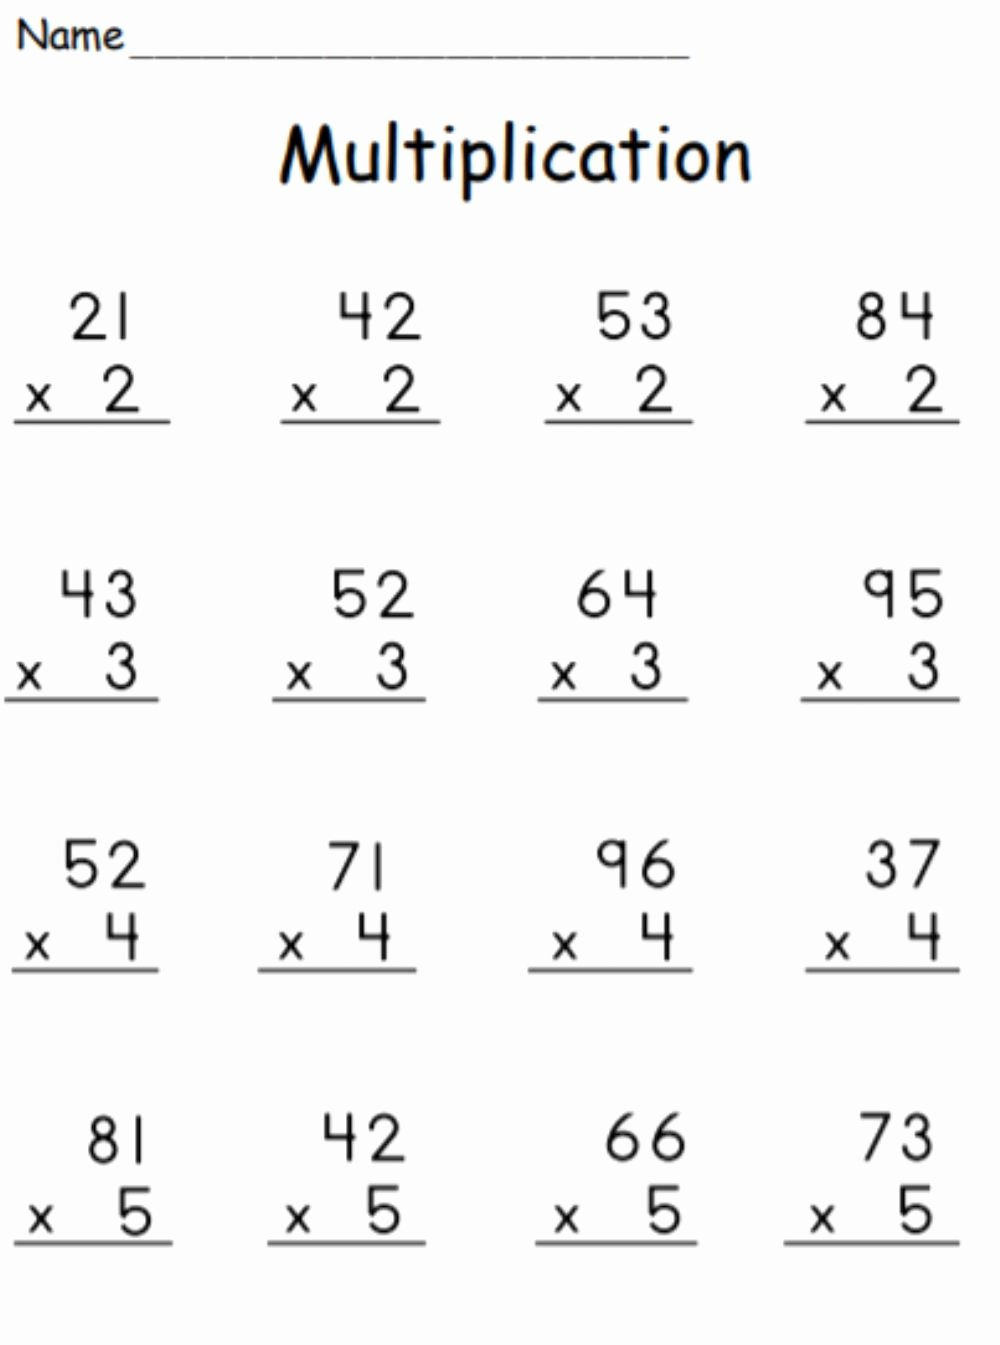 1 Digit Multiplication Worksheets Best Of Multiplication 2 Digit by 1 Digit with Regrouping